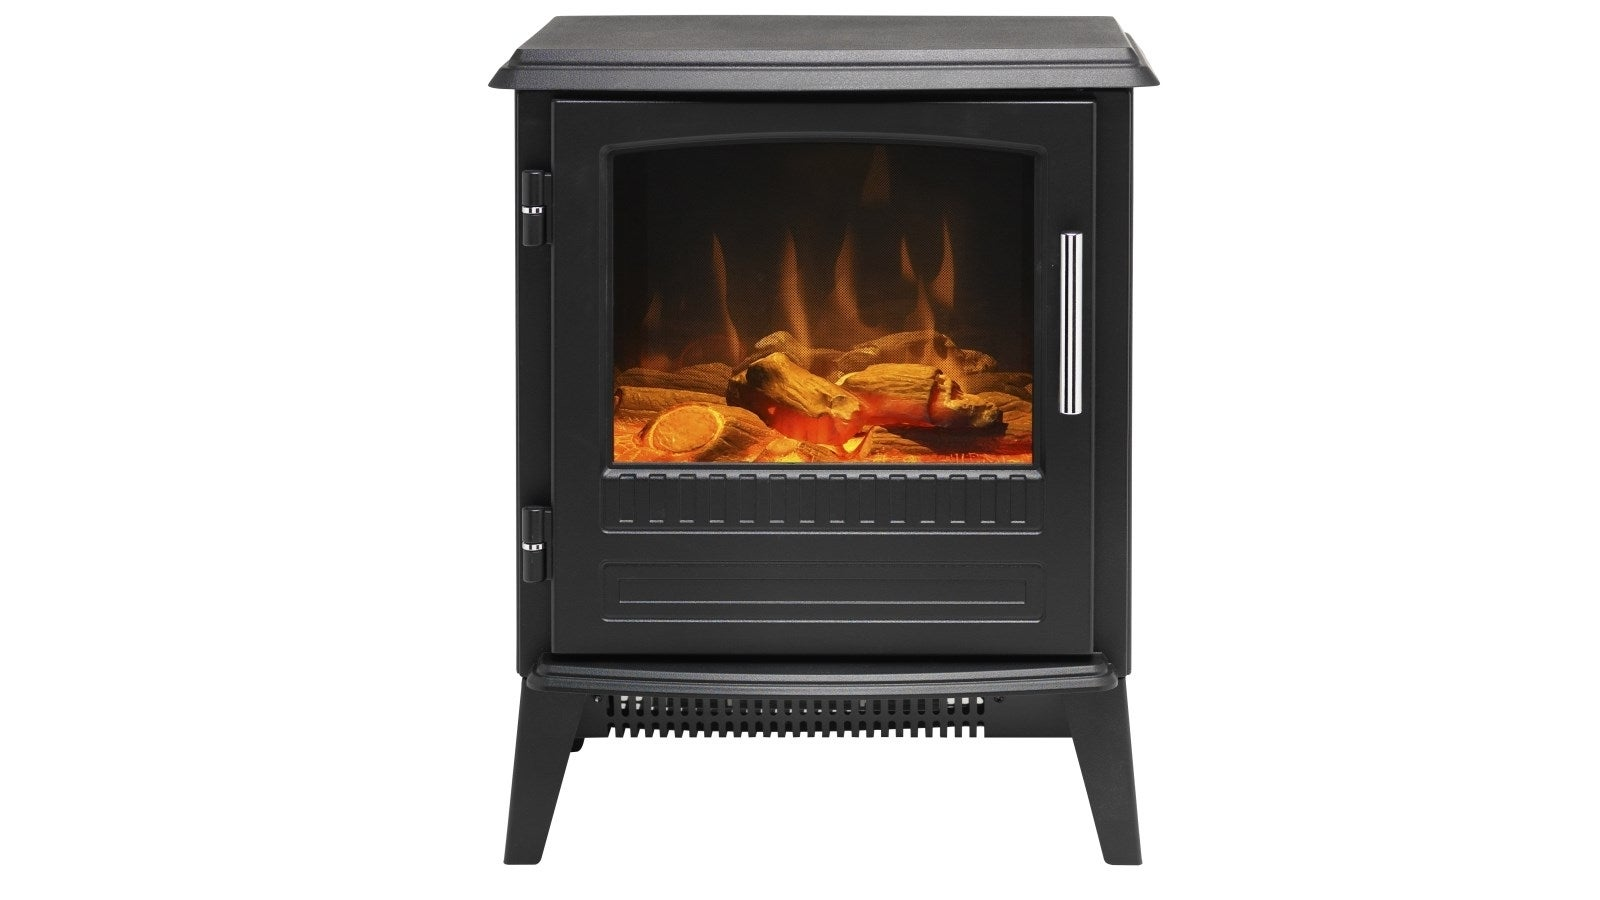 Dimplex 2kW 55cm Optiflame LED Effect Portable Electric Fireplace Heater